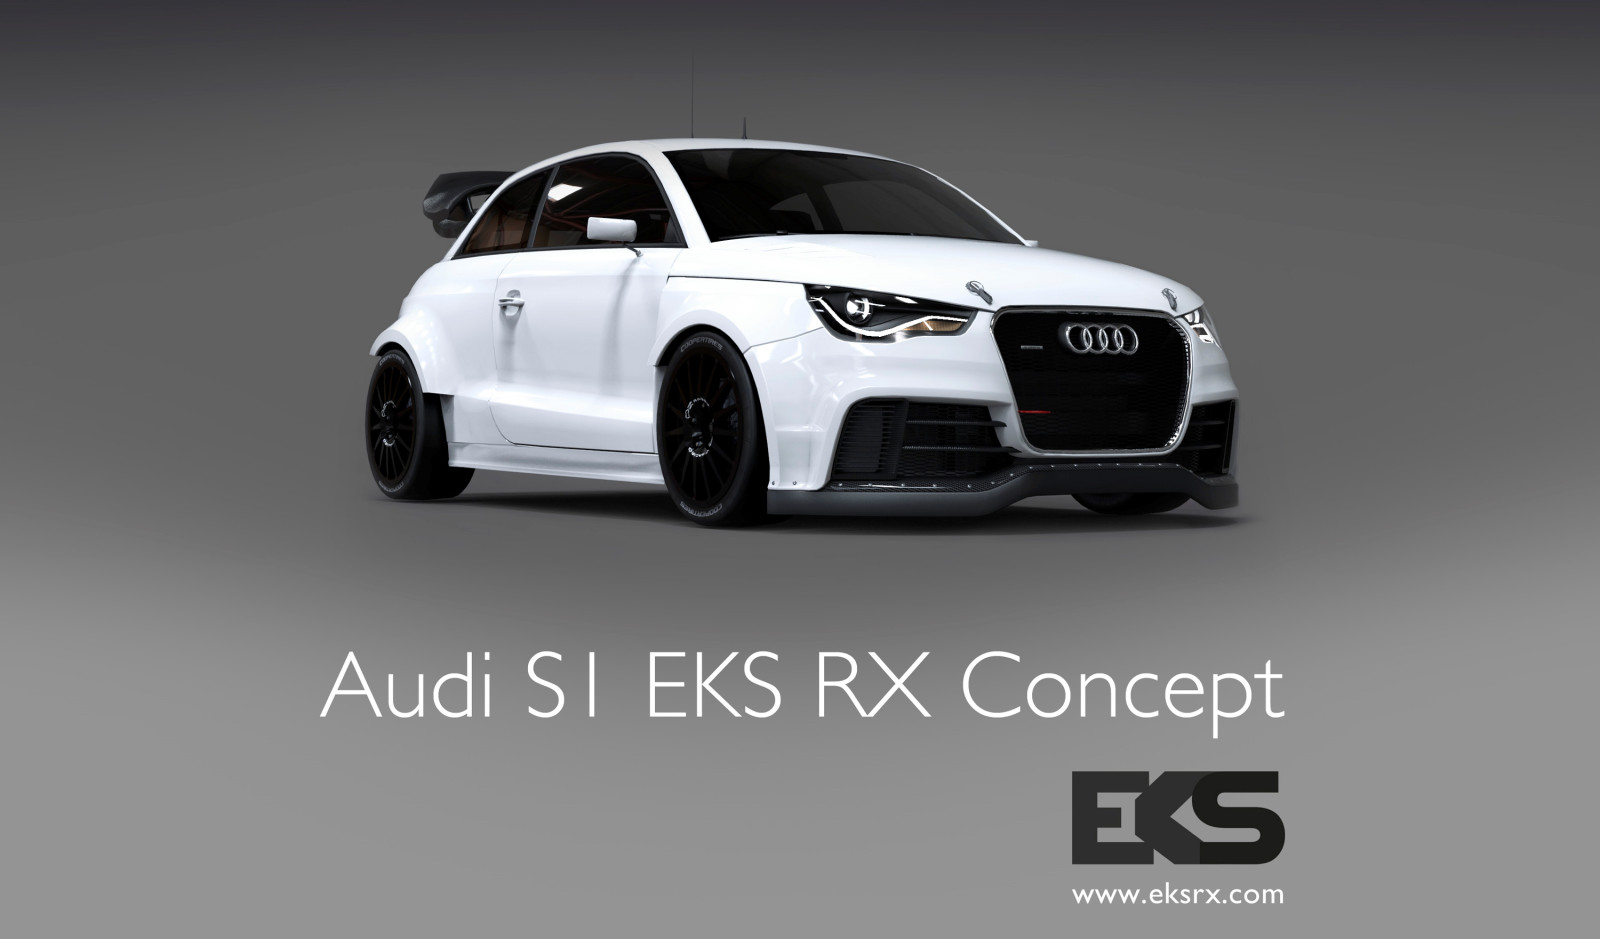 IMG01_AudiS1EKSRXConcept_23April